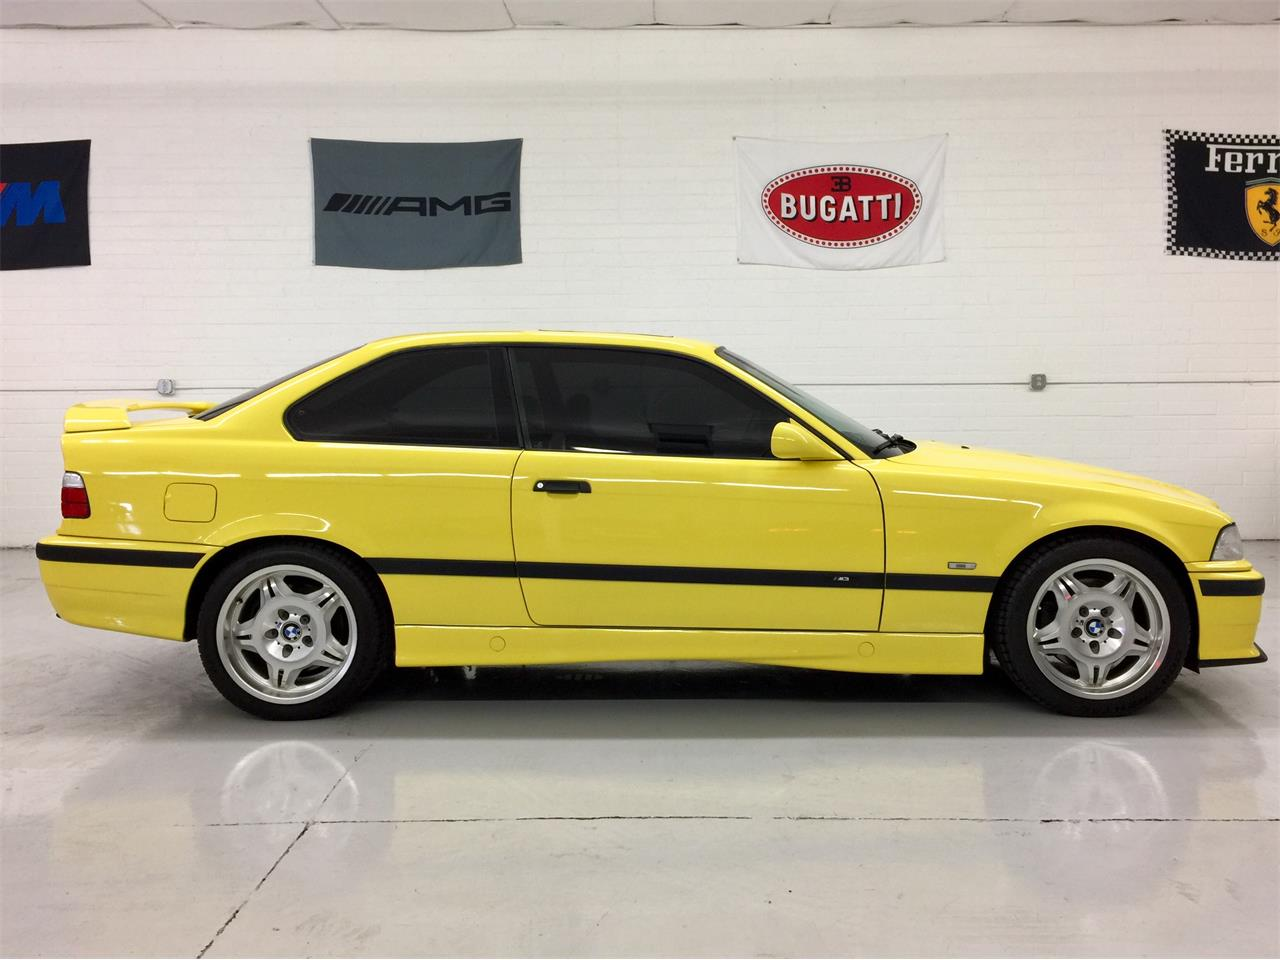 Large Picture of '97 BMW M3 located in Scottsdale Arizona Auction Vehicle - MO91